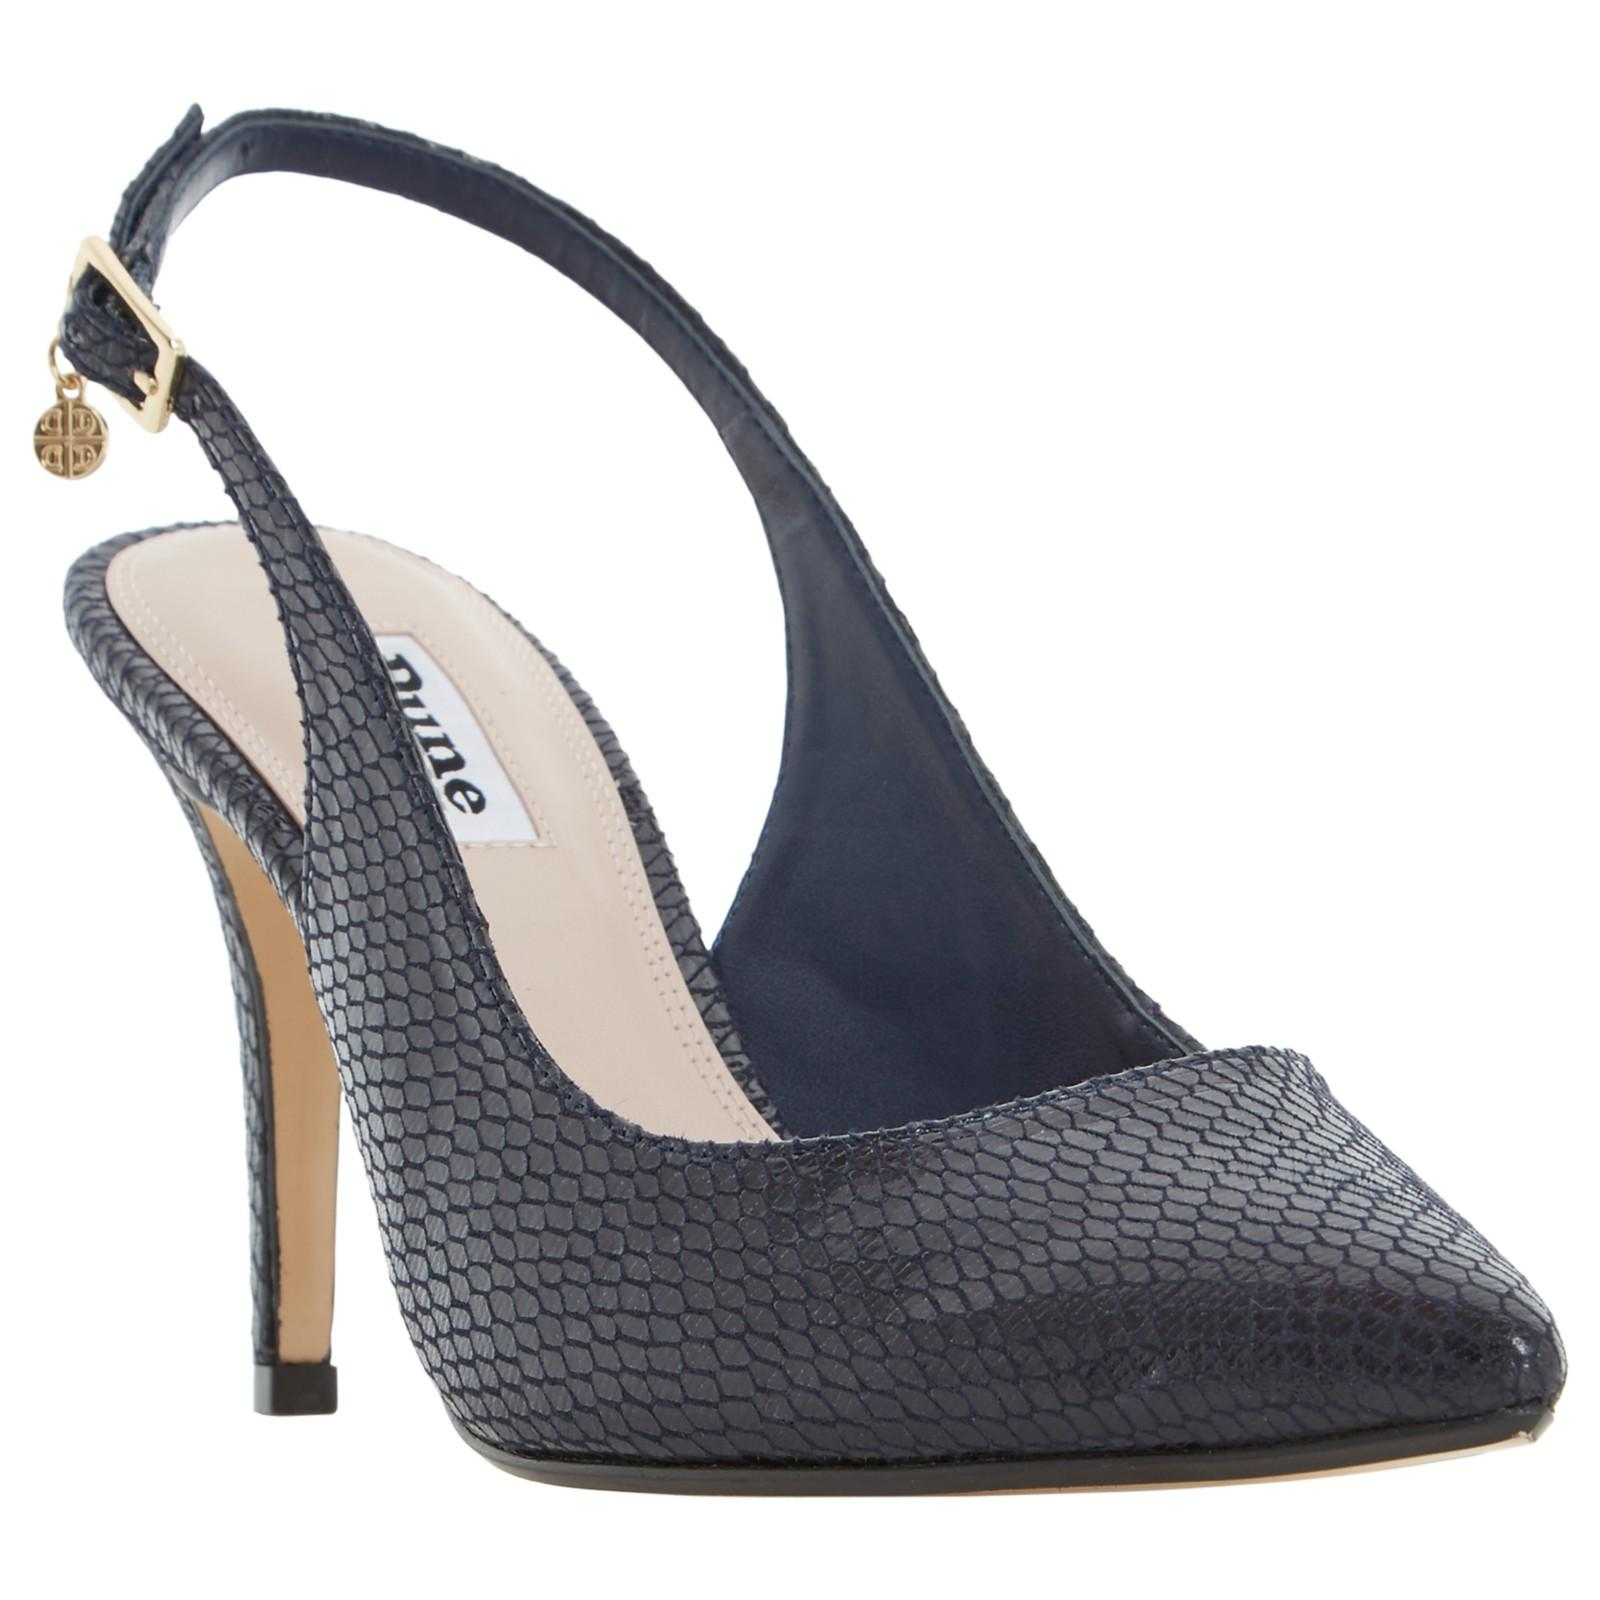 a18a513067 Dune Cathy Slingback High Heel Court Shoes in Blue - Lyst